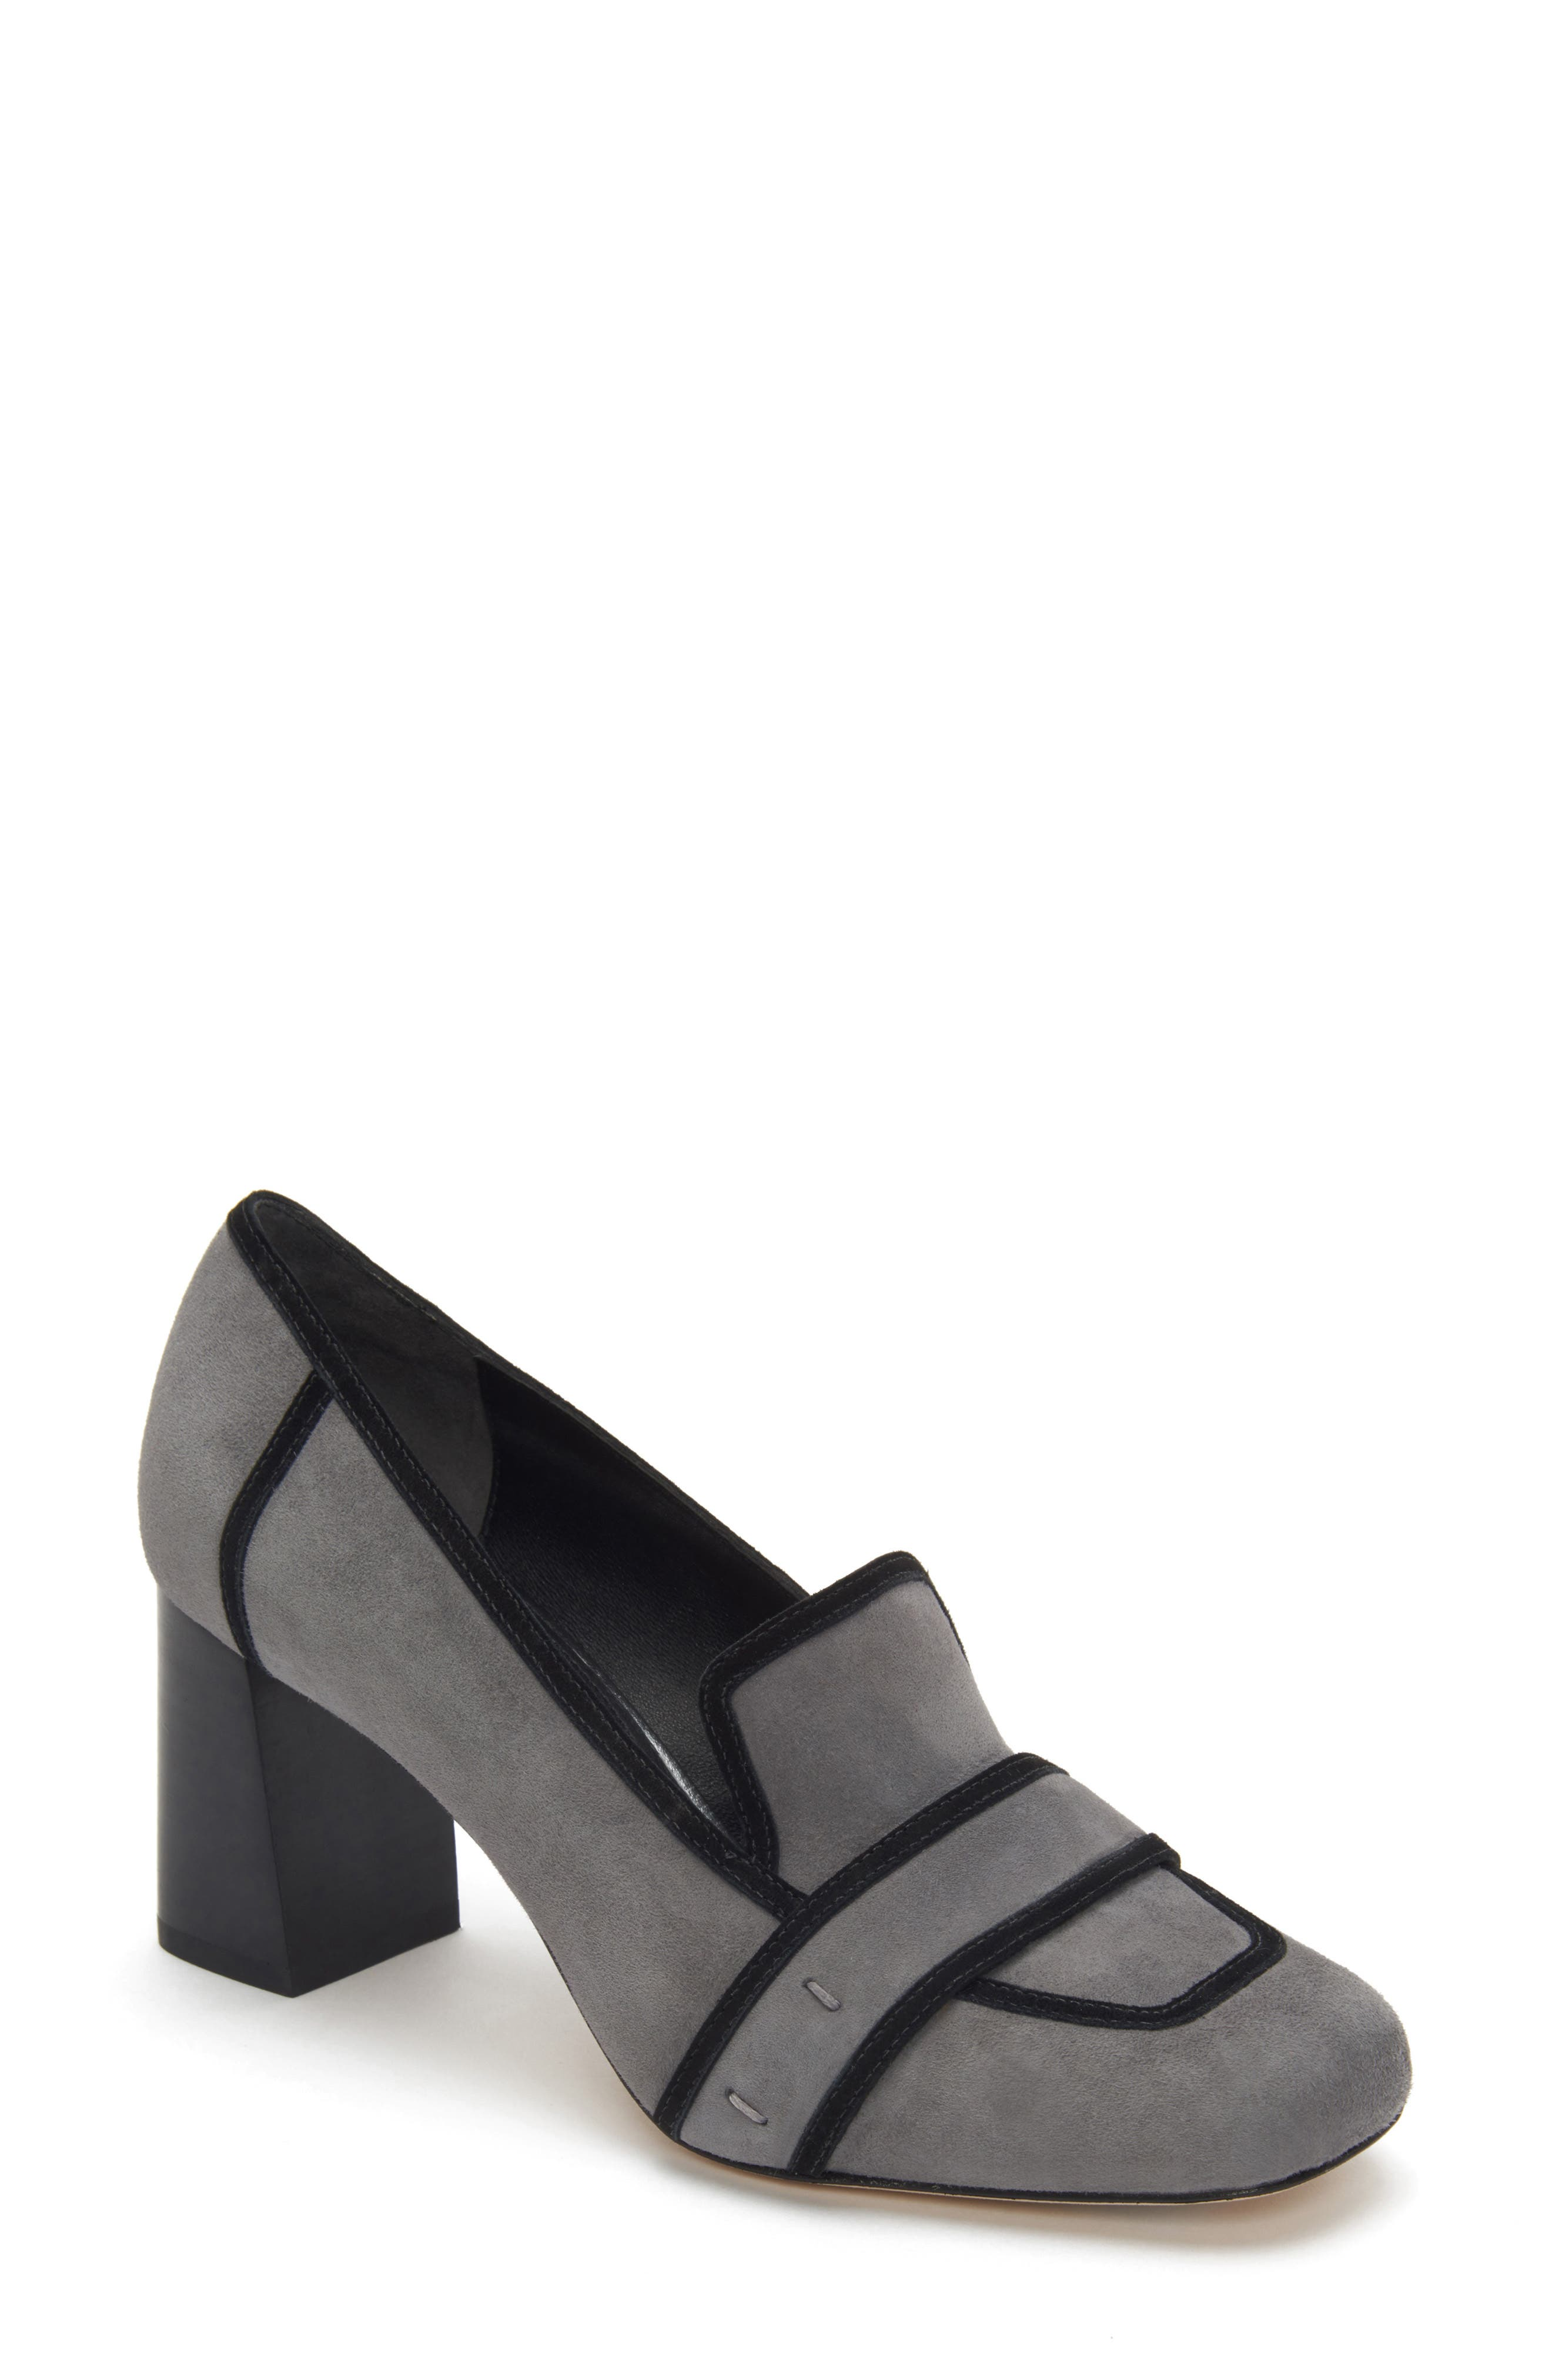 ETIENNE AIGNER Darcy Pump in Granite Suede